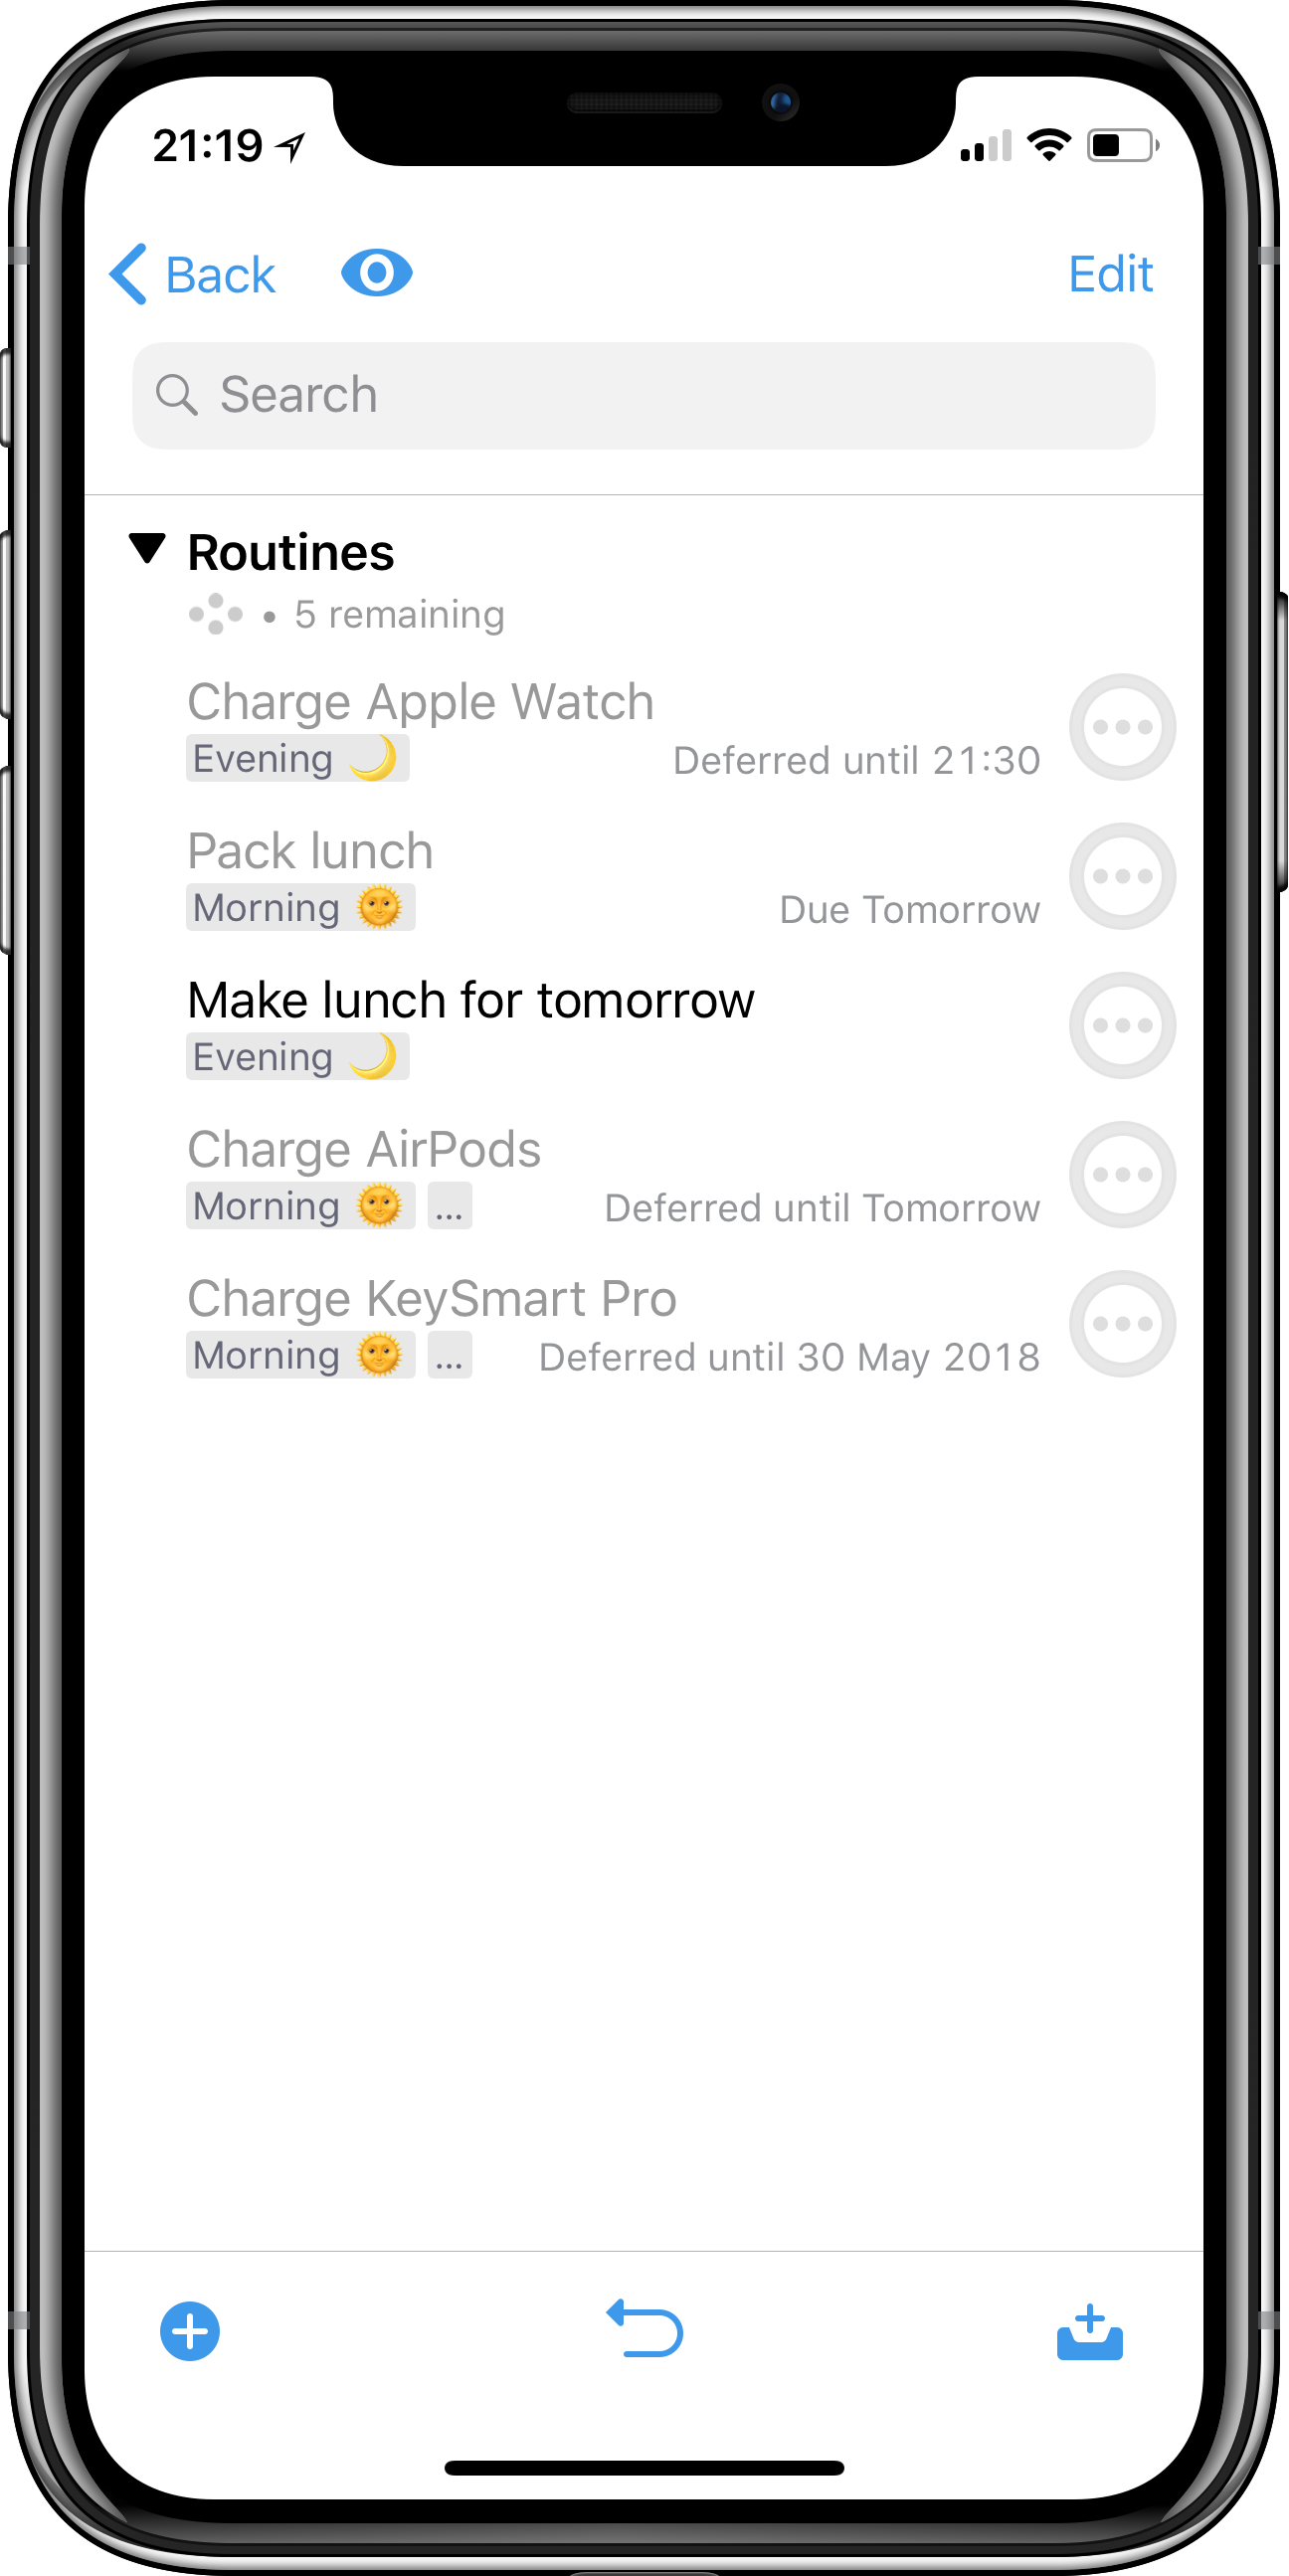 OmniFocus screenshot showing Rose's Routines project with several tasks such as Charge Apple Watch, Pack Lunch, and so on